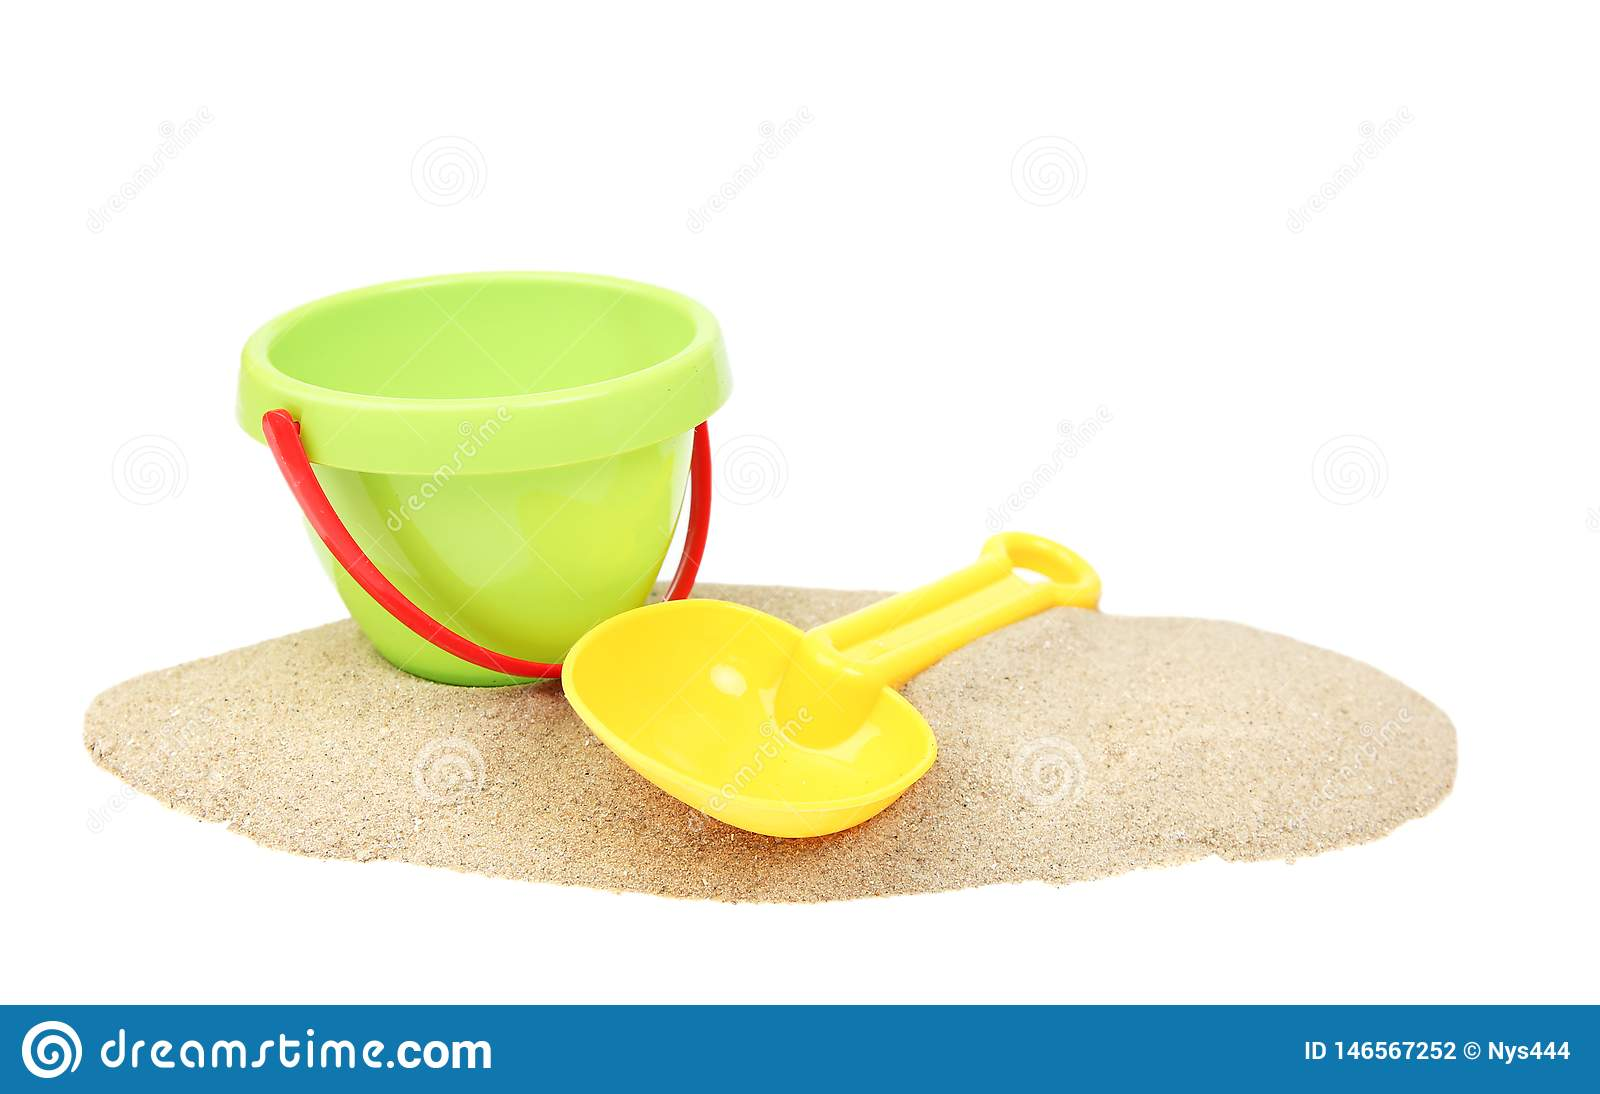 Plastic bucket and showel on sand isolated